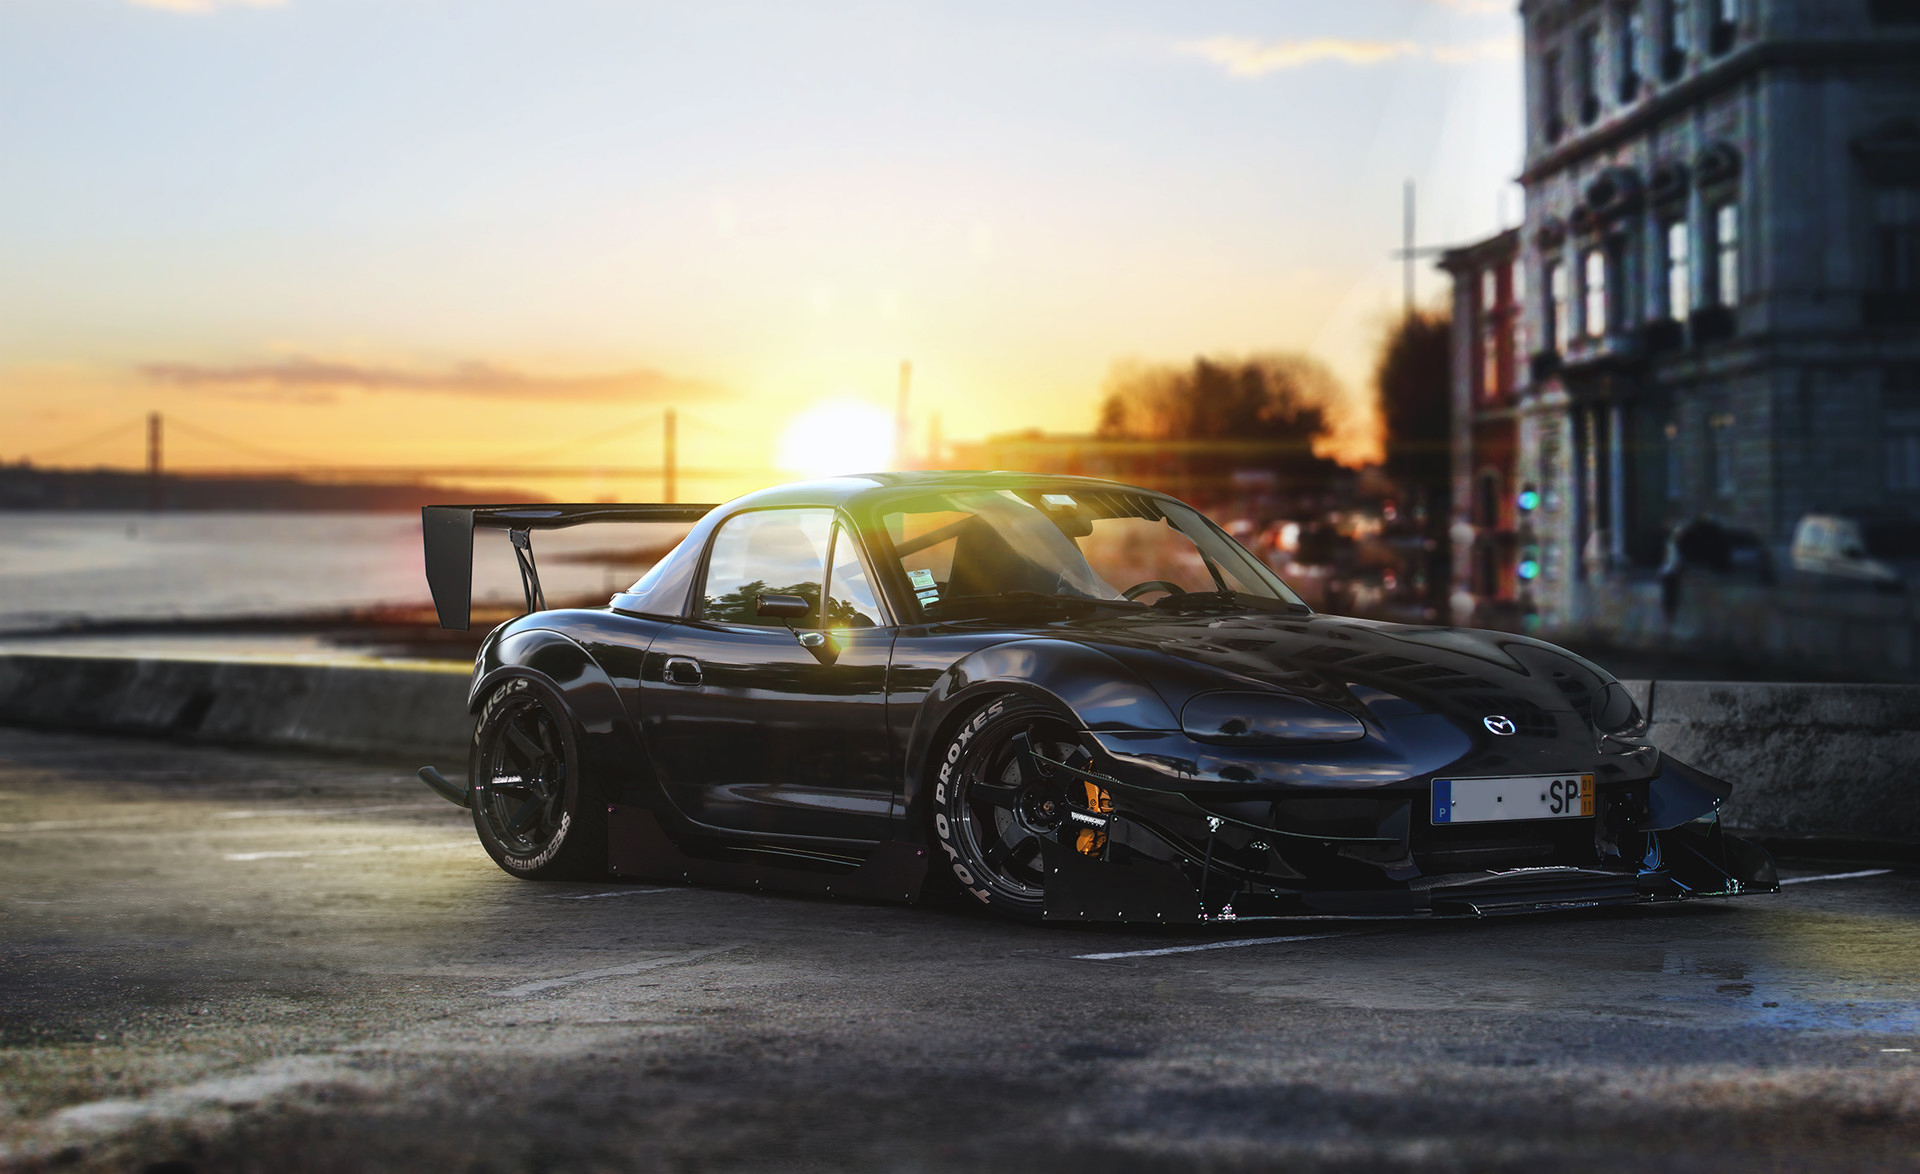 Mazda MX5 HD Cars 4k Wallpapers Images Backgrounds